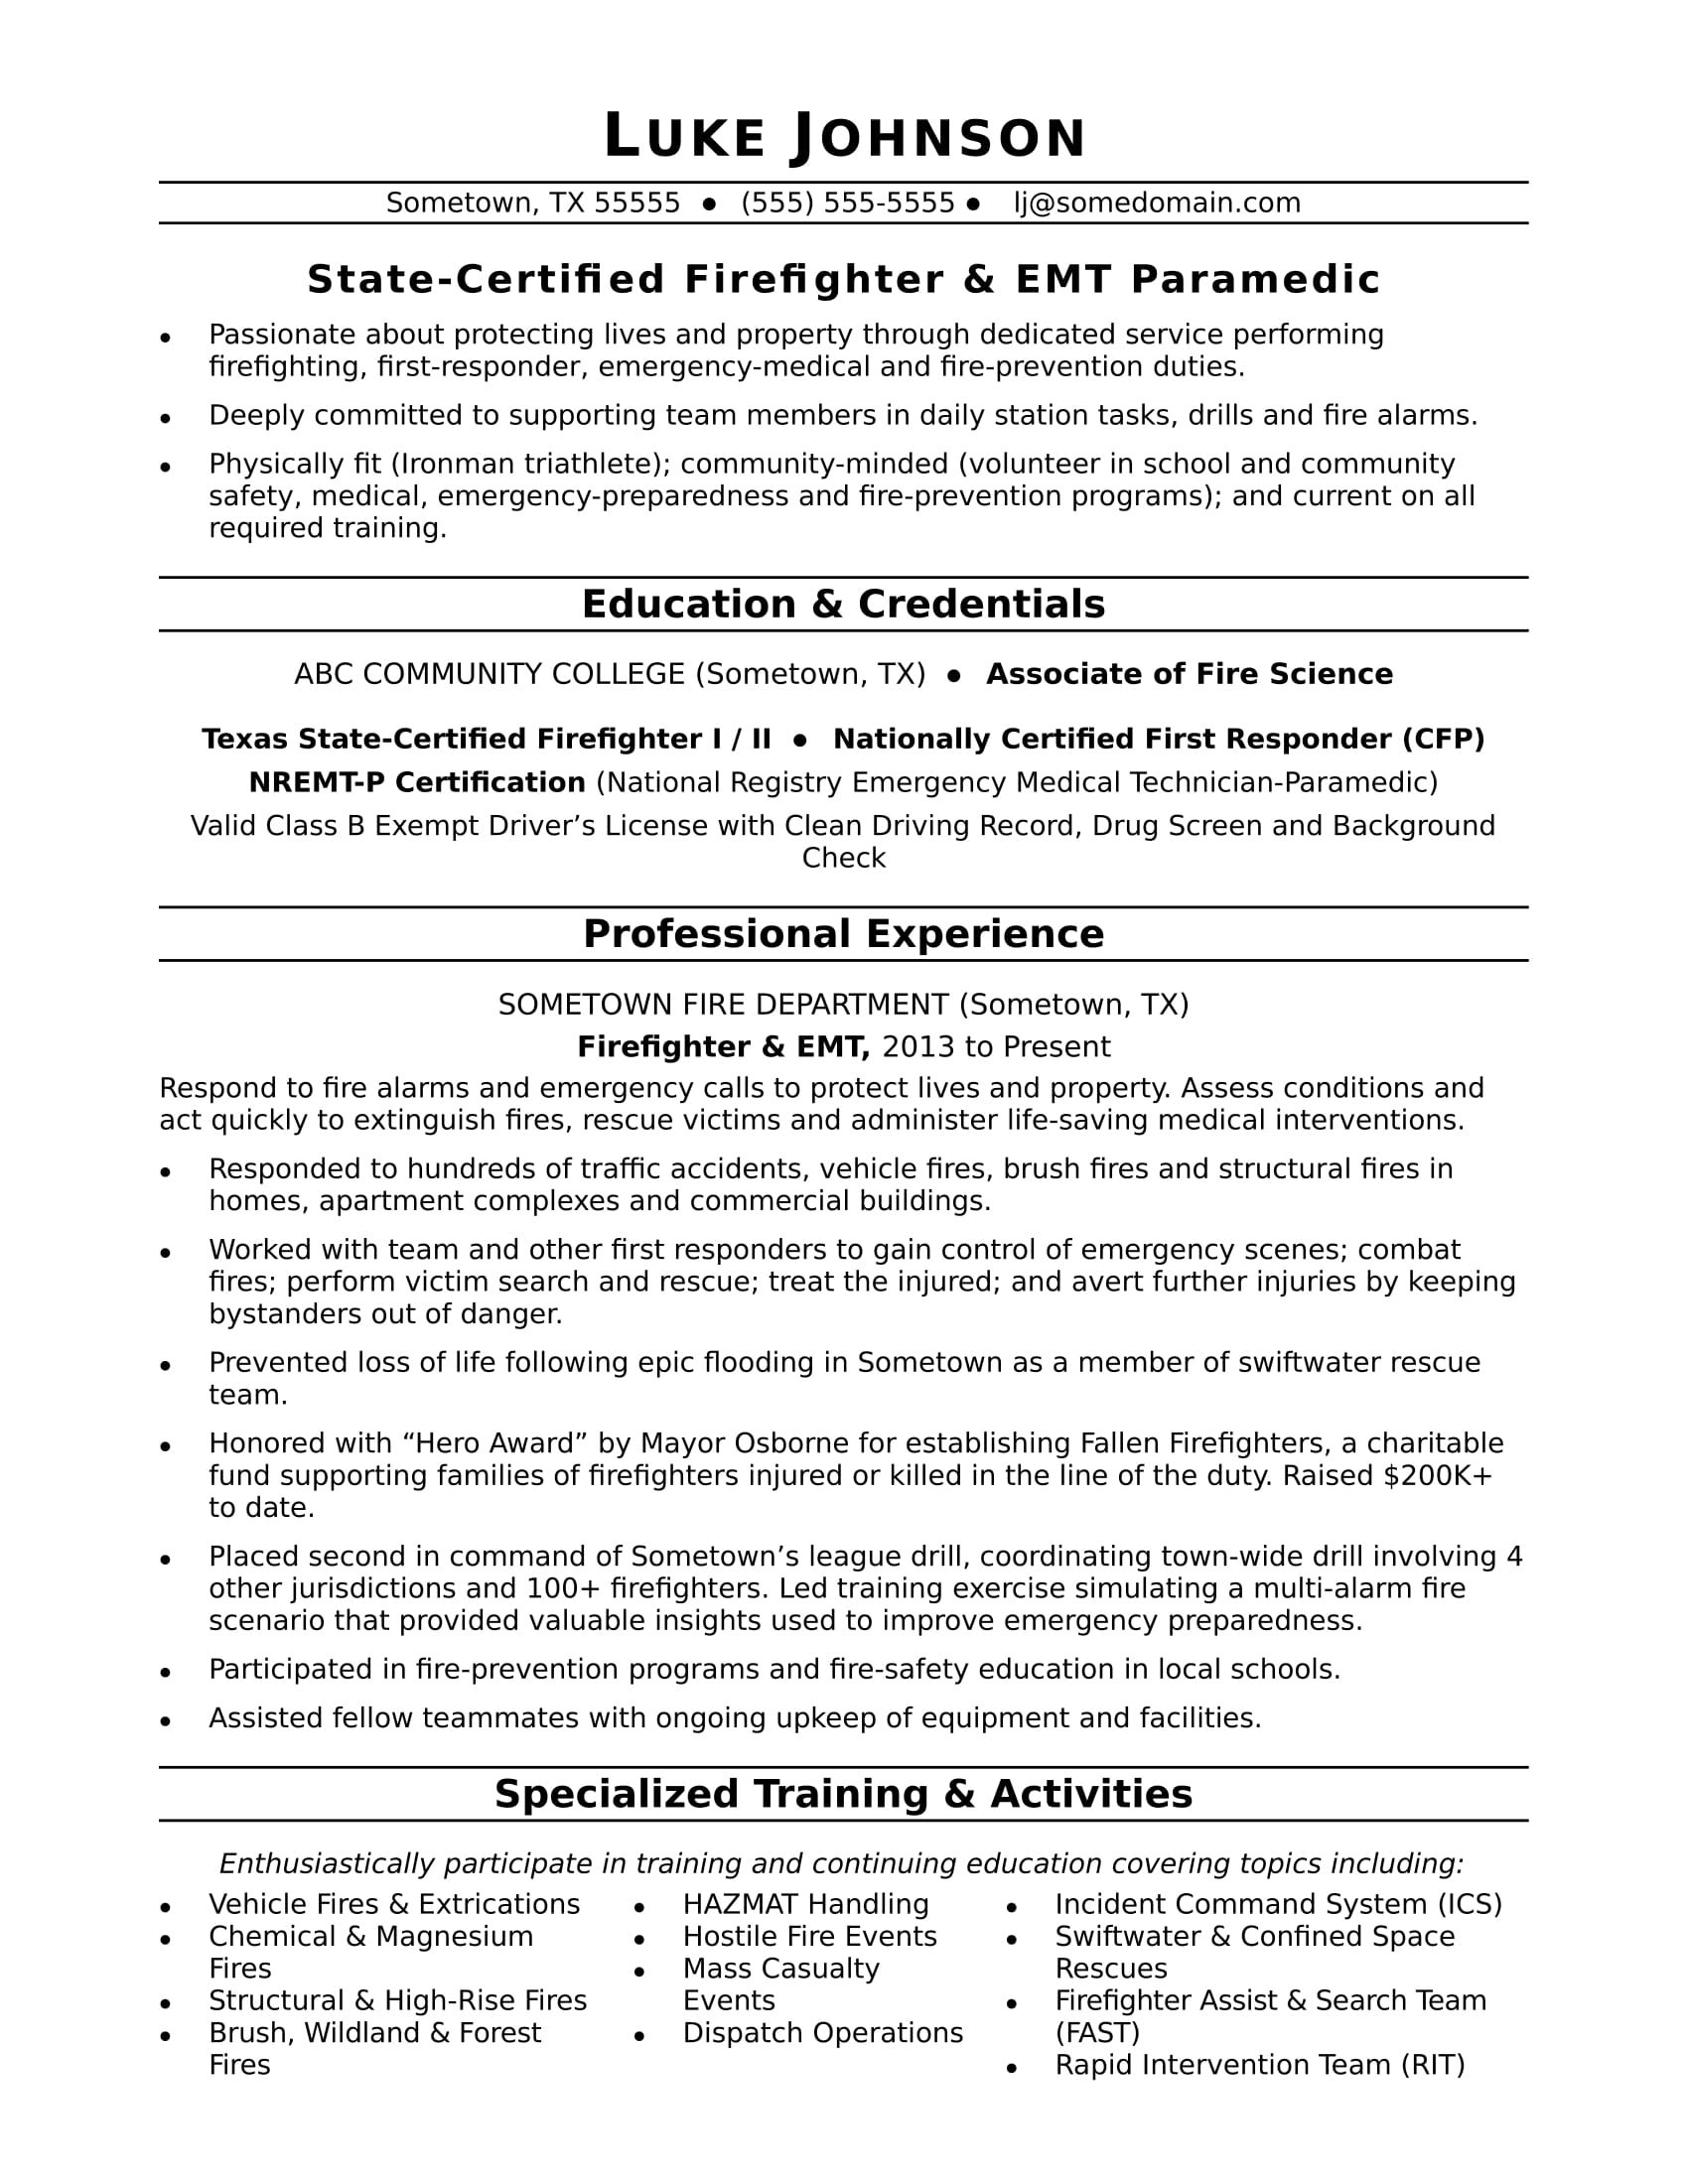 Firefighter Resume Sample | Monster.com